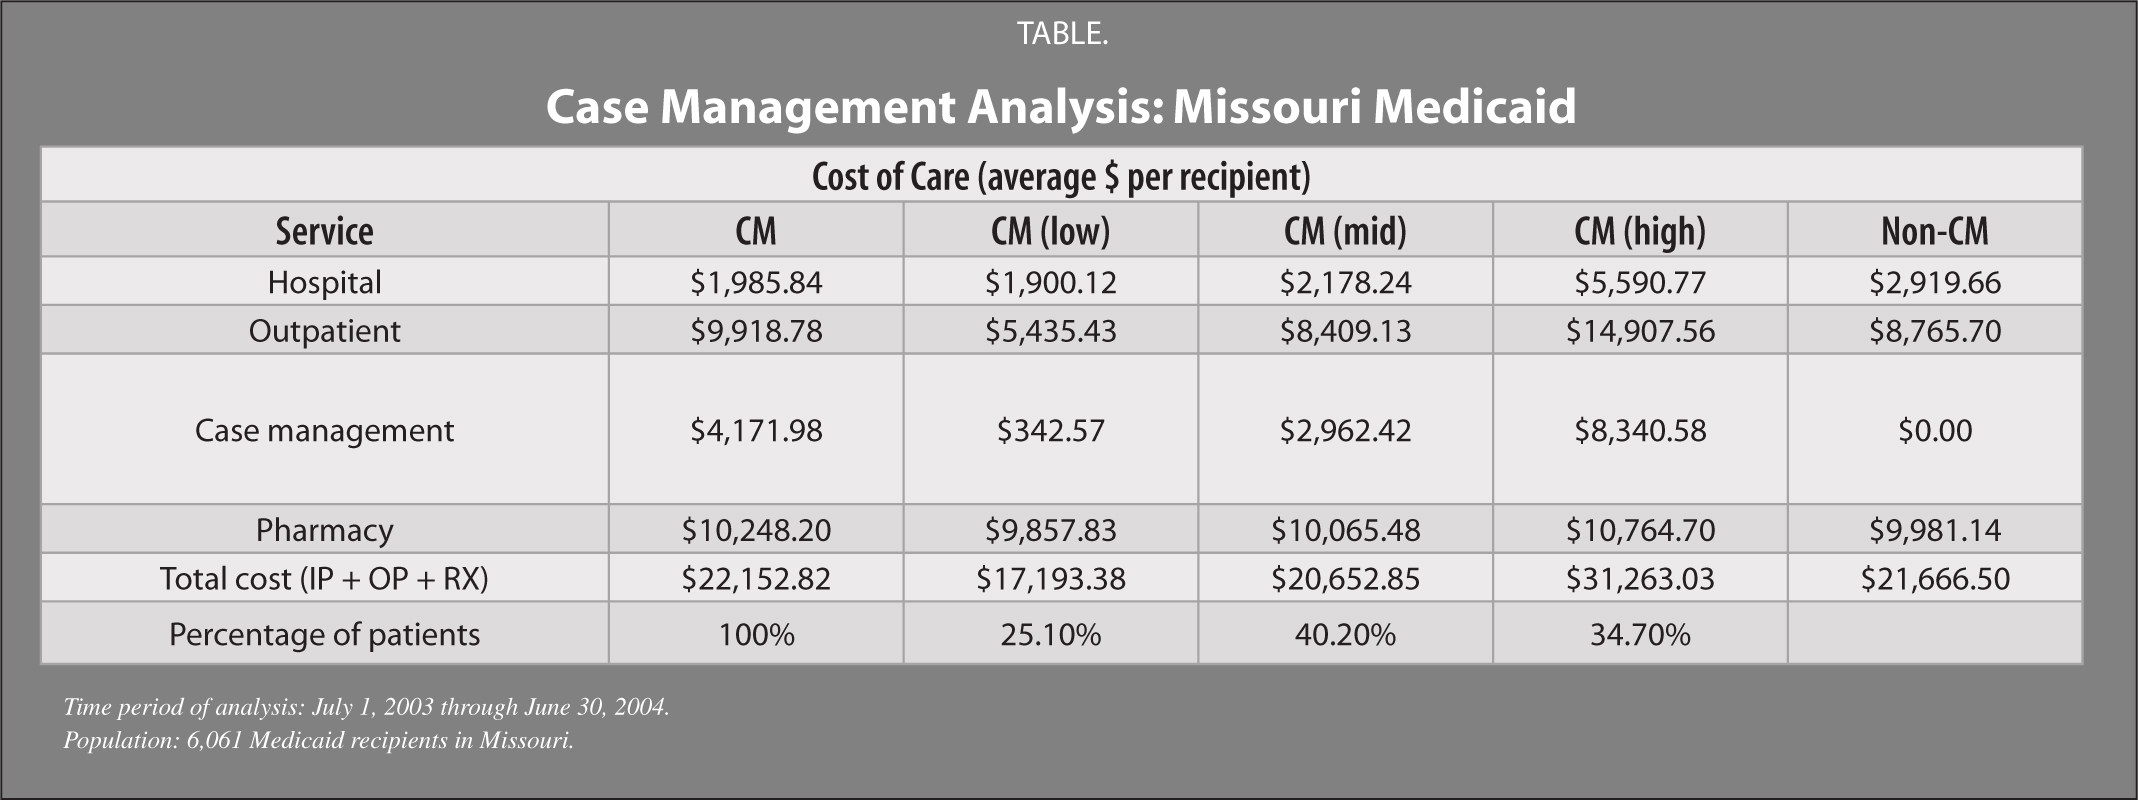 Case Management Analysis: Missouri Medicaid